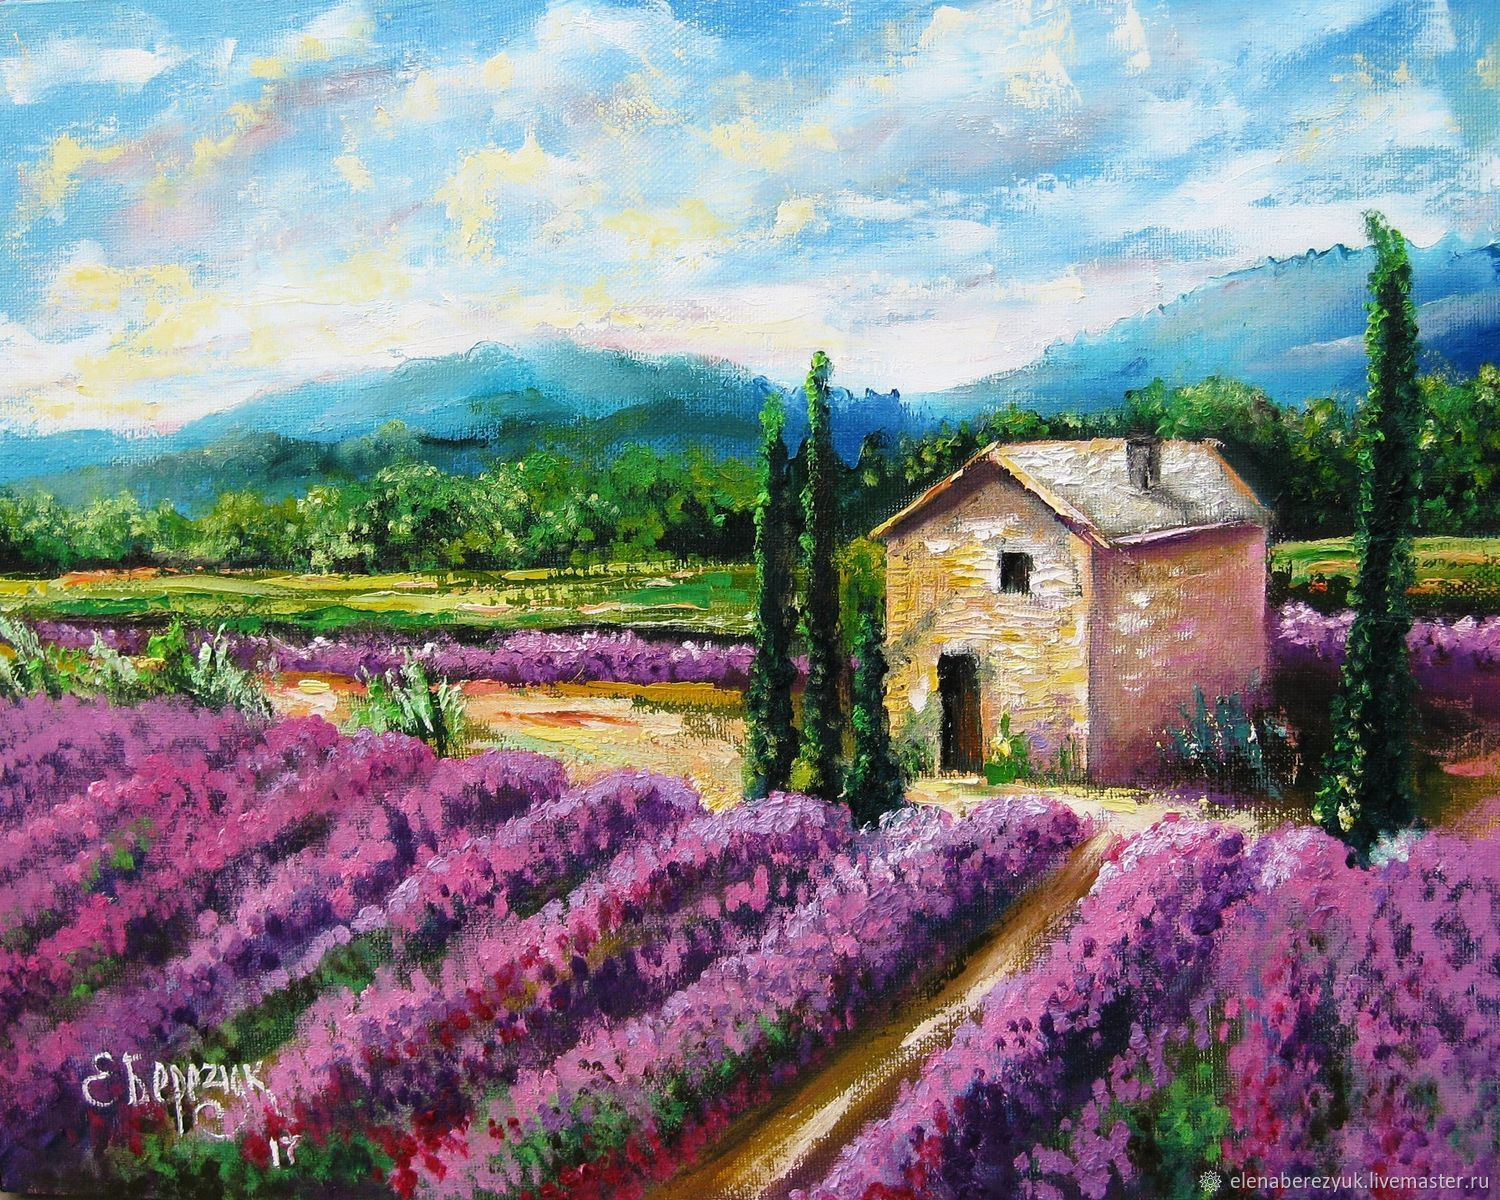 Download Landscape Summer - a03fbc11feab9cc32c639bdf65n8--paintings-panels-lavender-field-original-oil-painting-summer-  Pic_416452.jpg